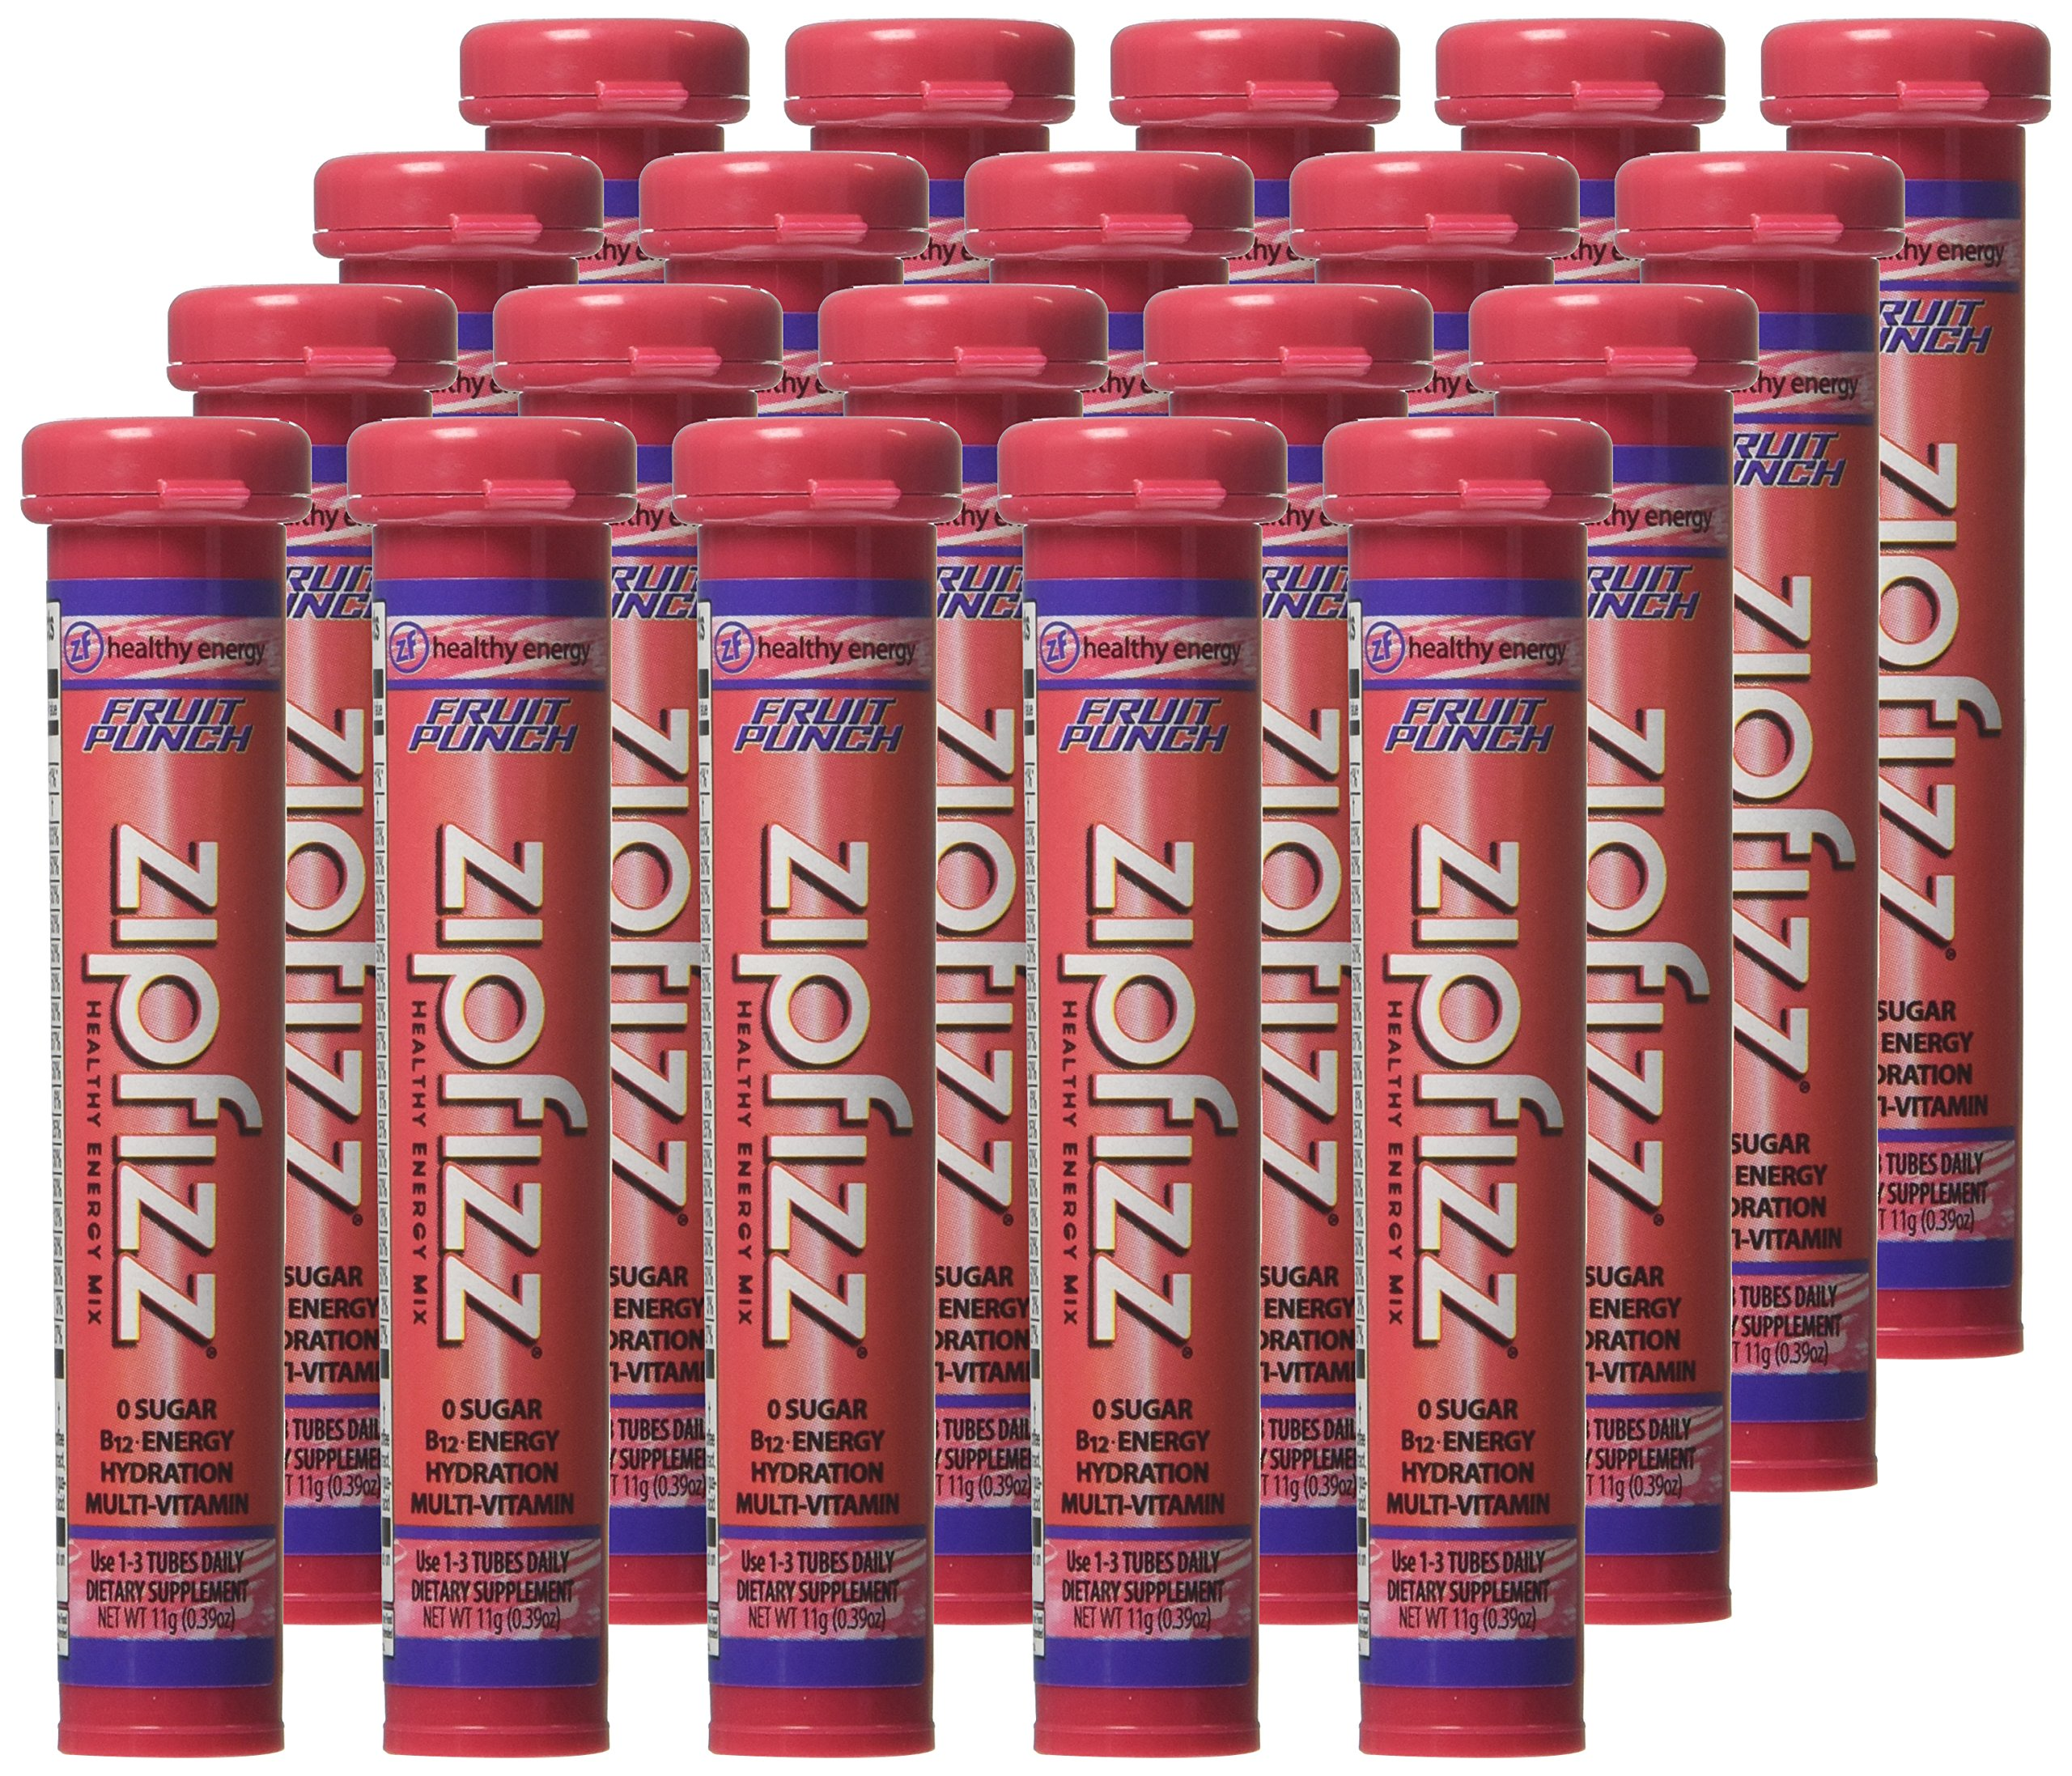 Zipfizz Fruit Punch Flavored Drink Packets, 20 Count by Zipfizz (Image #2)